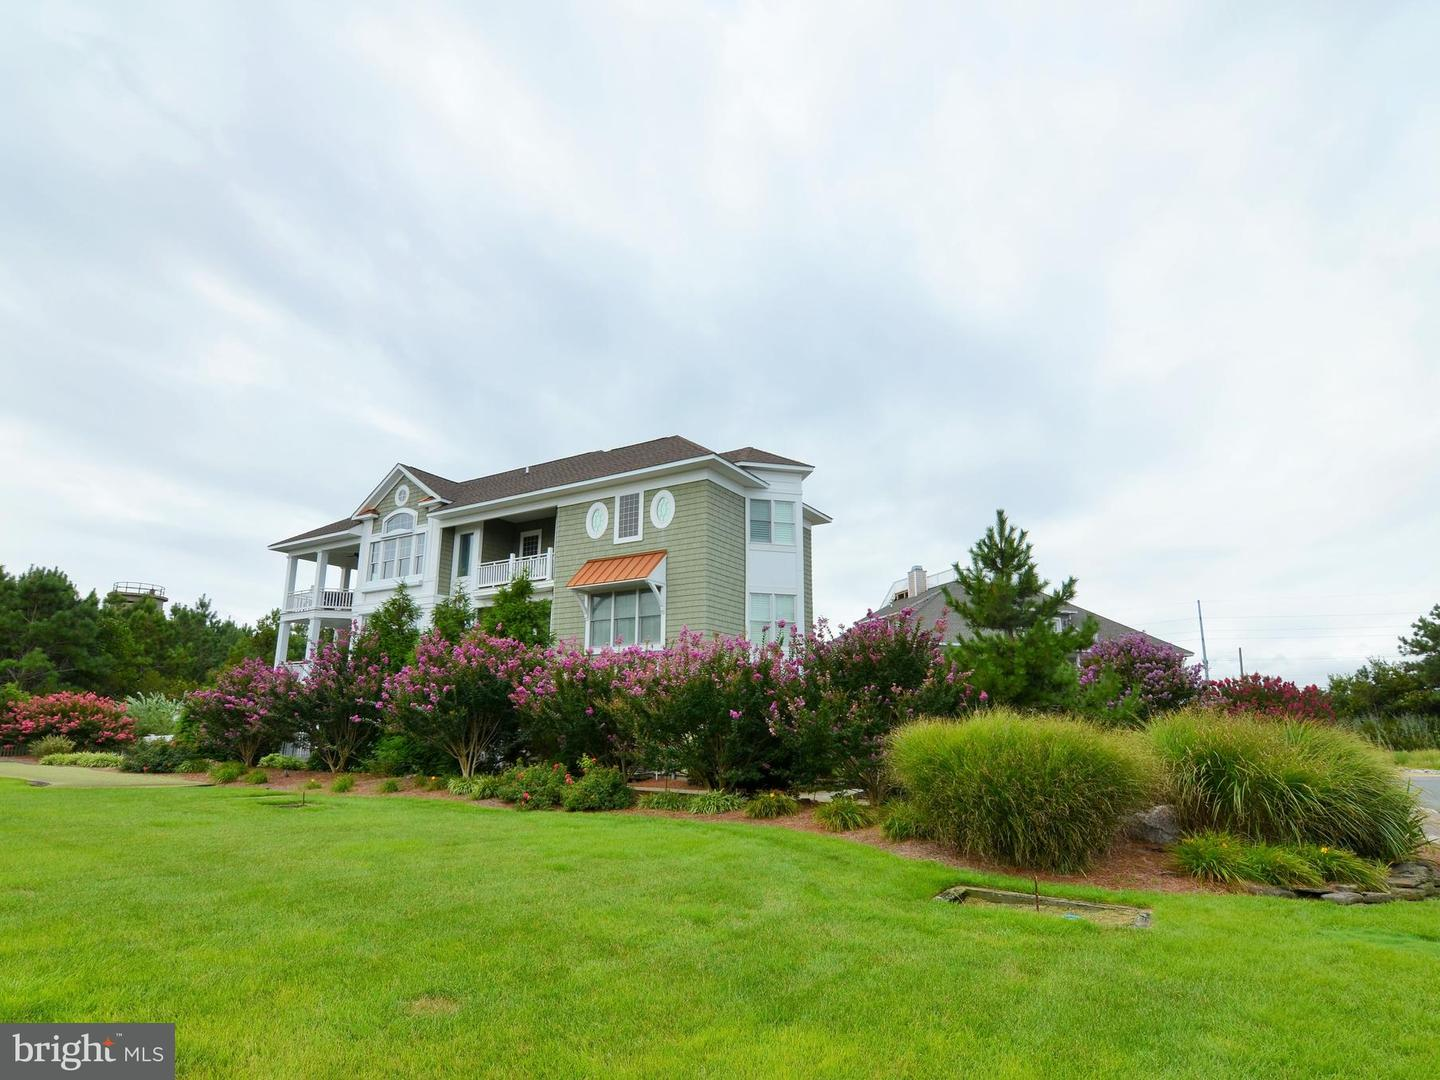 1002293530-300500805576-2018-09-25-15-08-24 31 Hall Ave | Rehoboth Beach, De Real Estate For Sale | MLS# 1002293530  - Suzanne Macnab